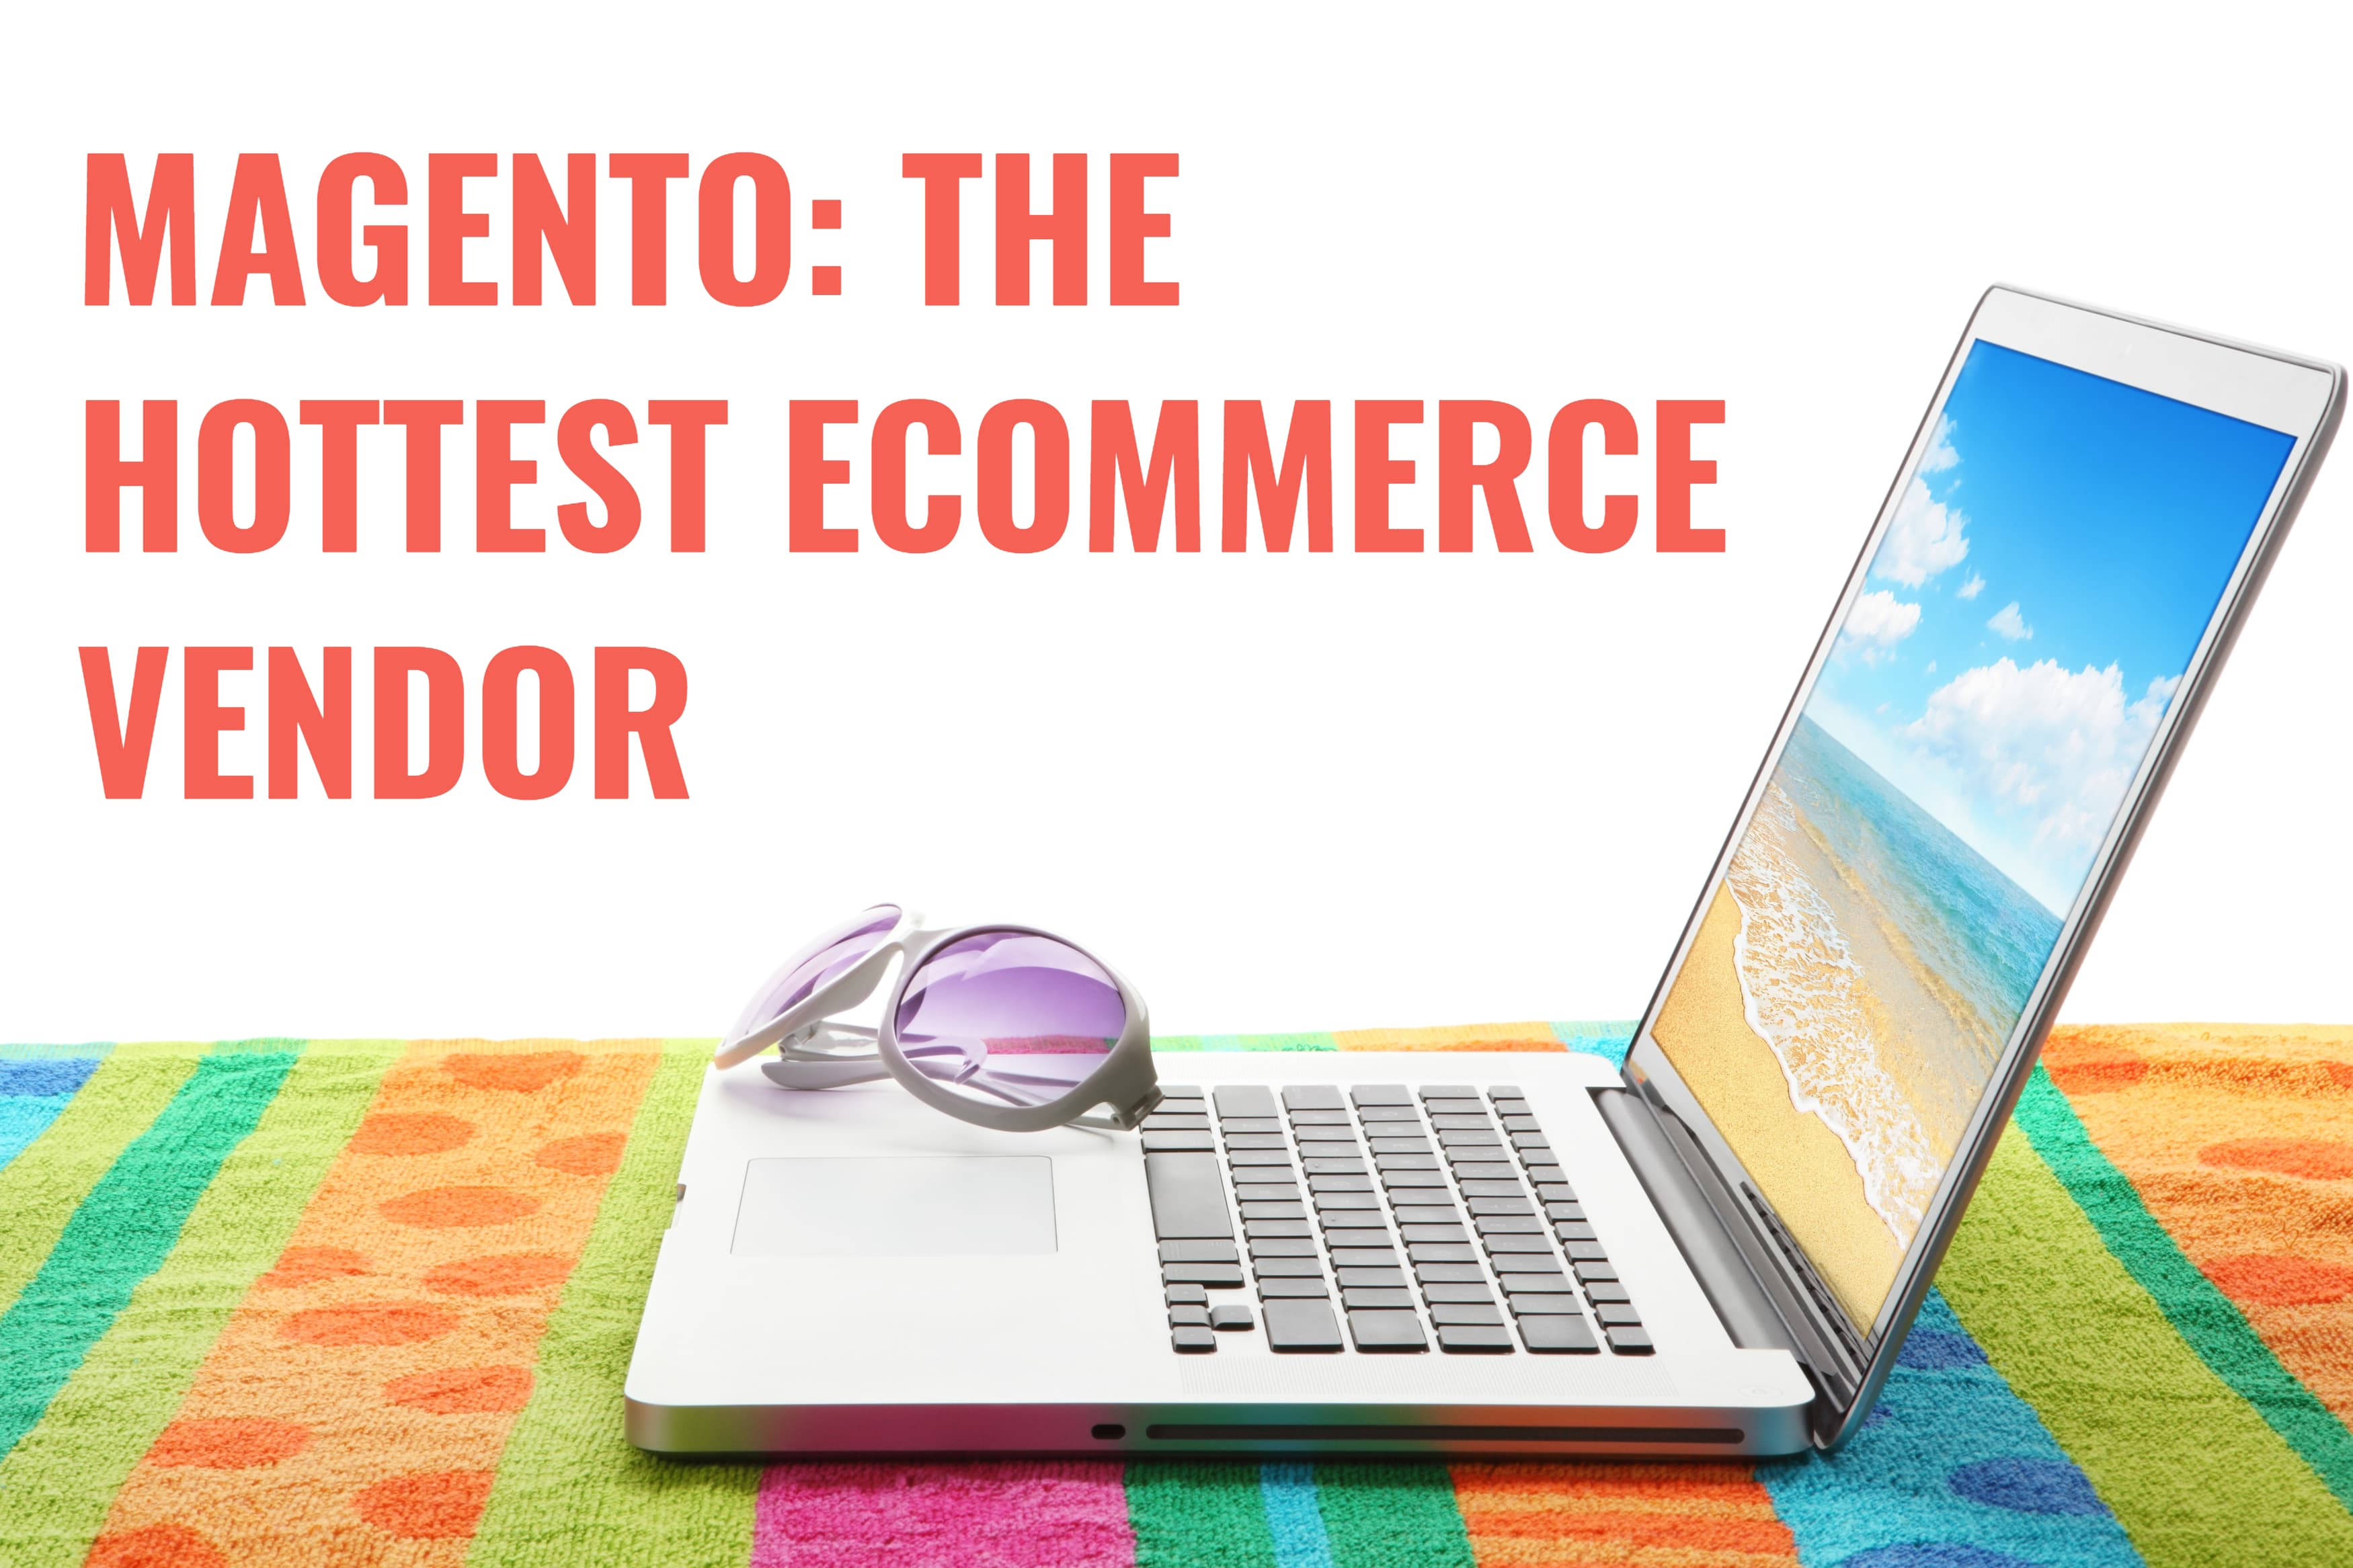 Magento: The Hottest eCommerce Vendor